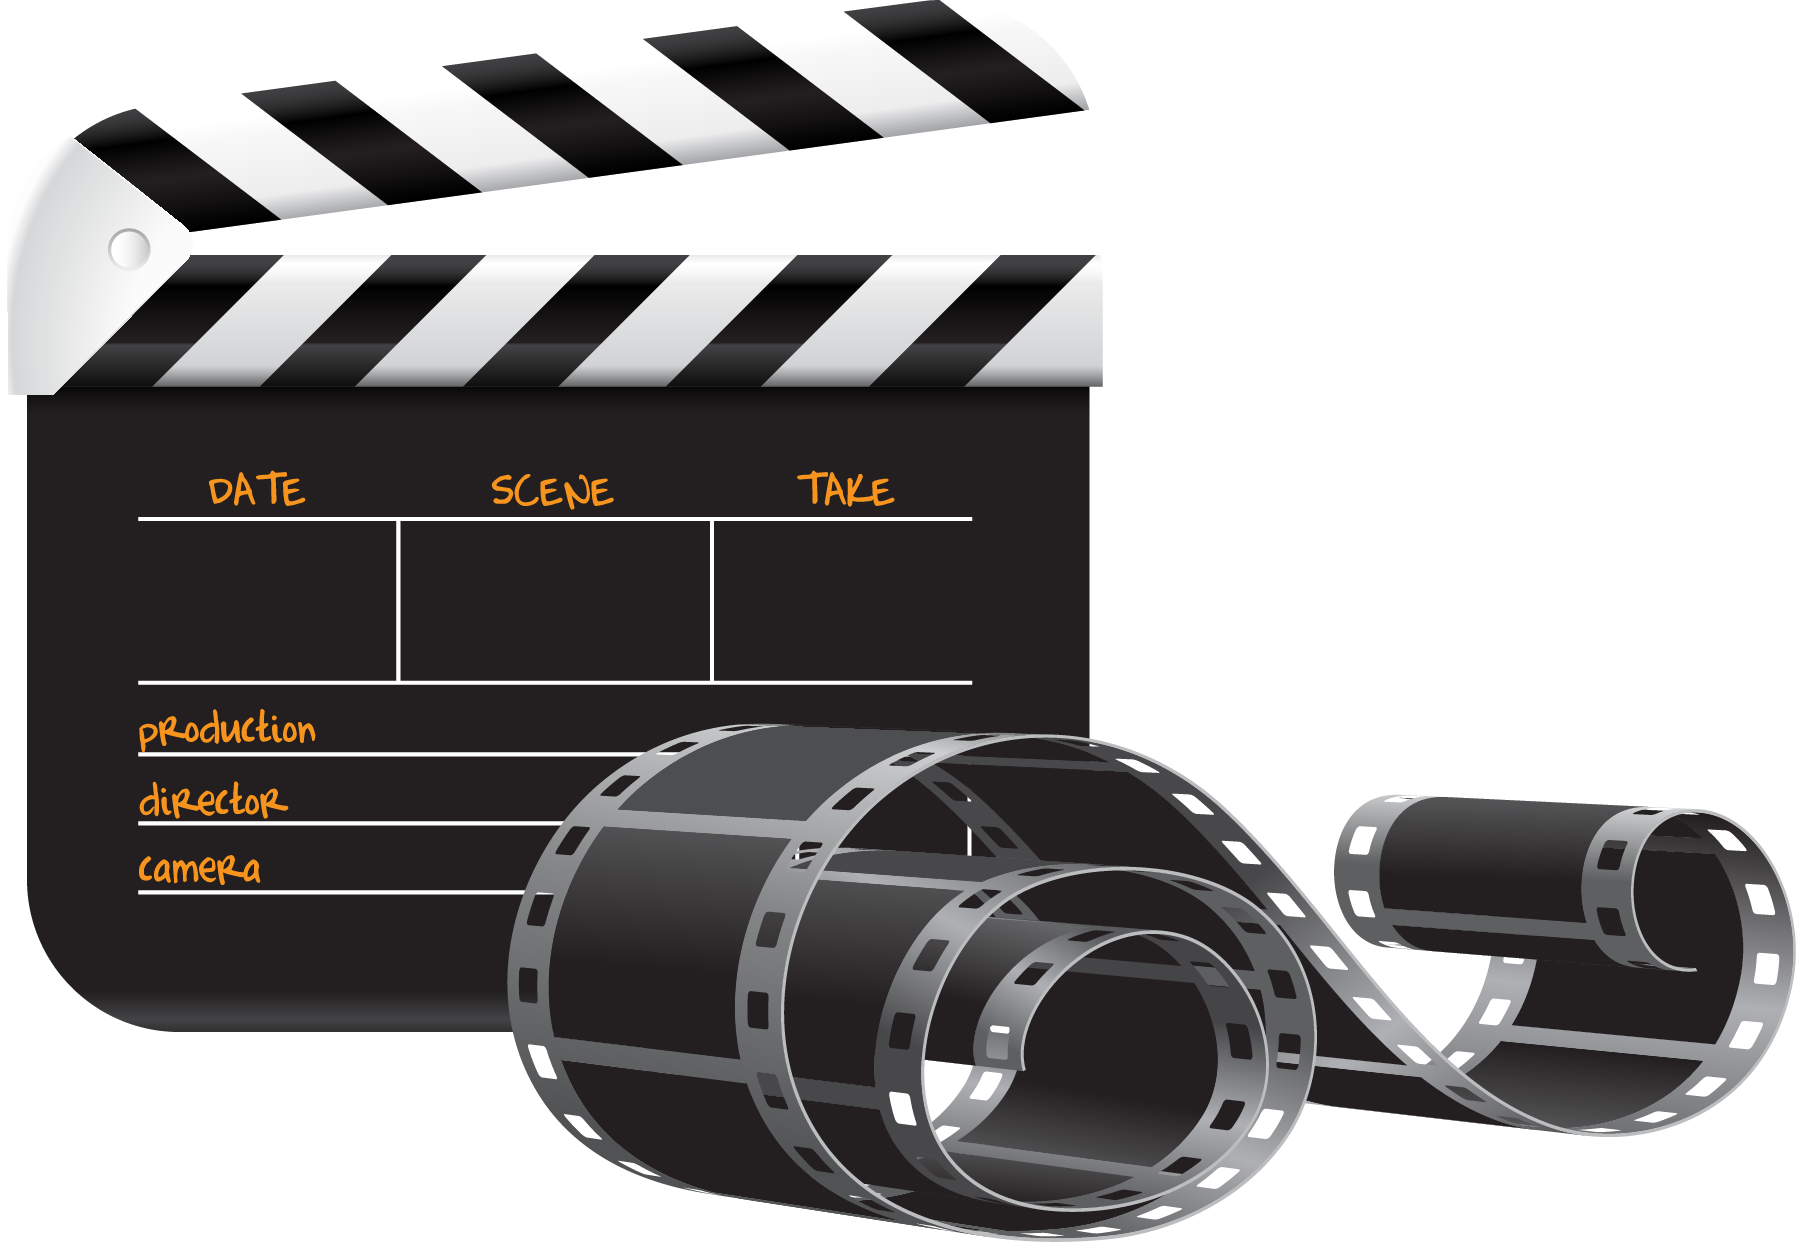 Movie clipart This ideal Creative & Free